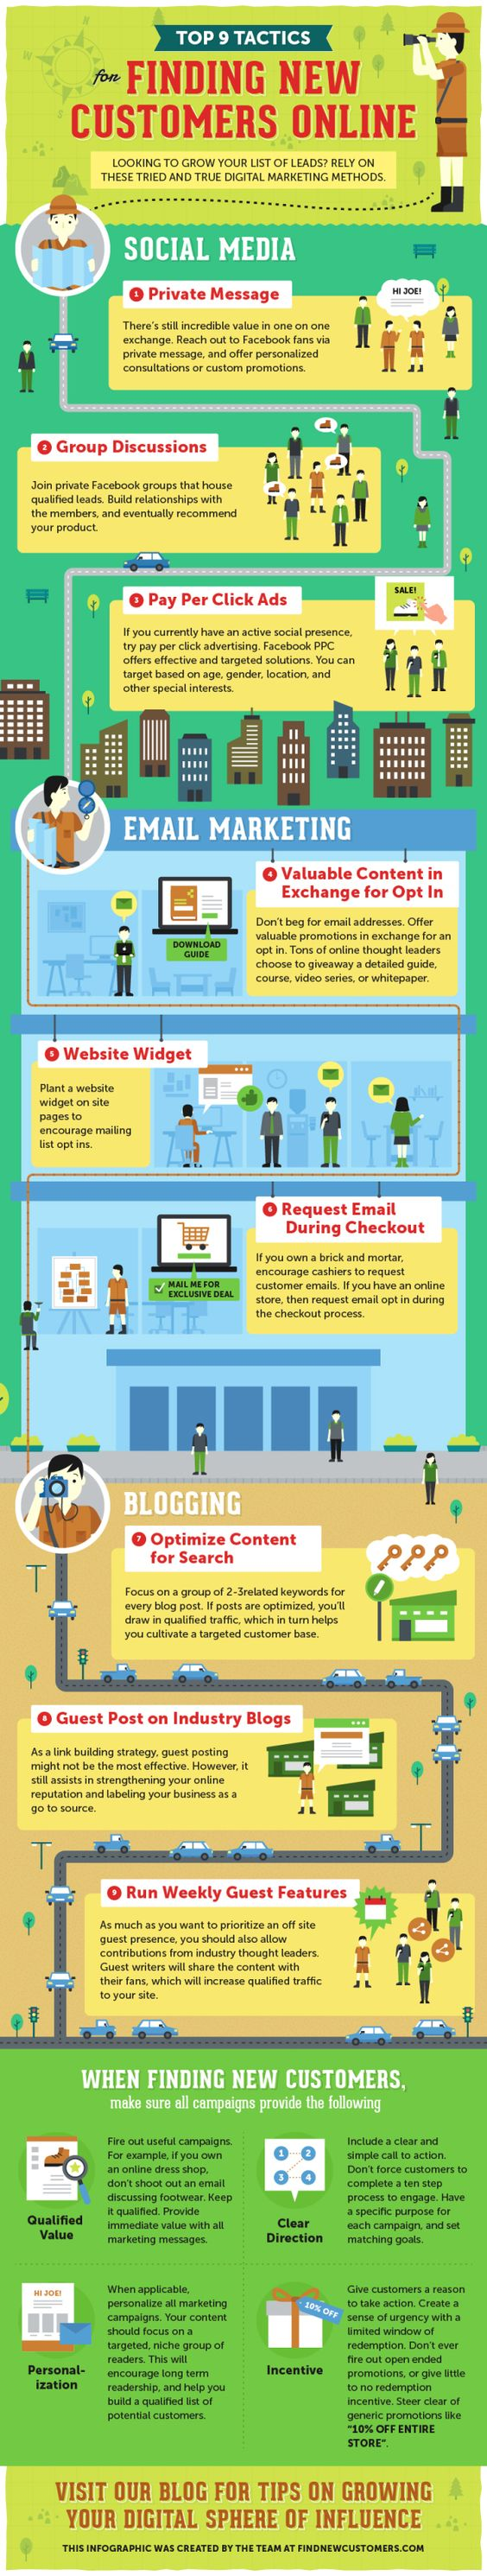 Starting a New Business Here's 9 Top Ways to Find New Customers Online - @Red Website Design